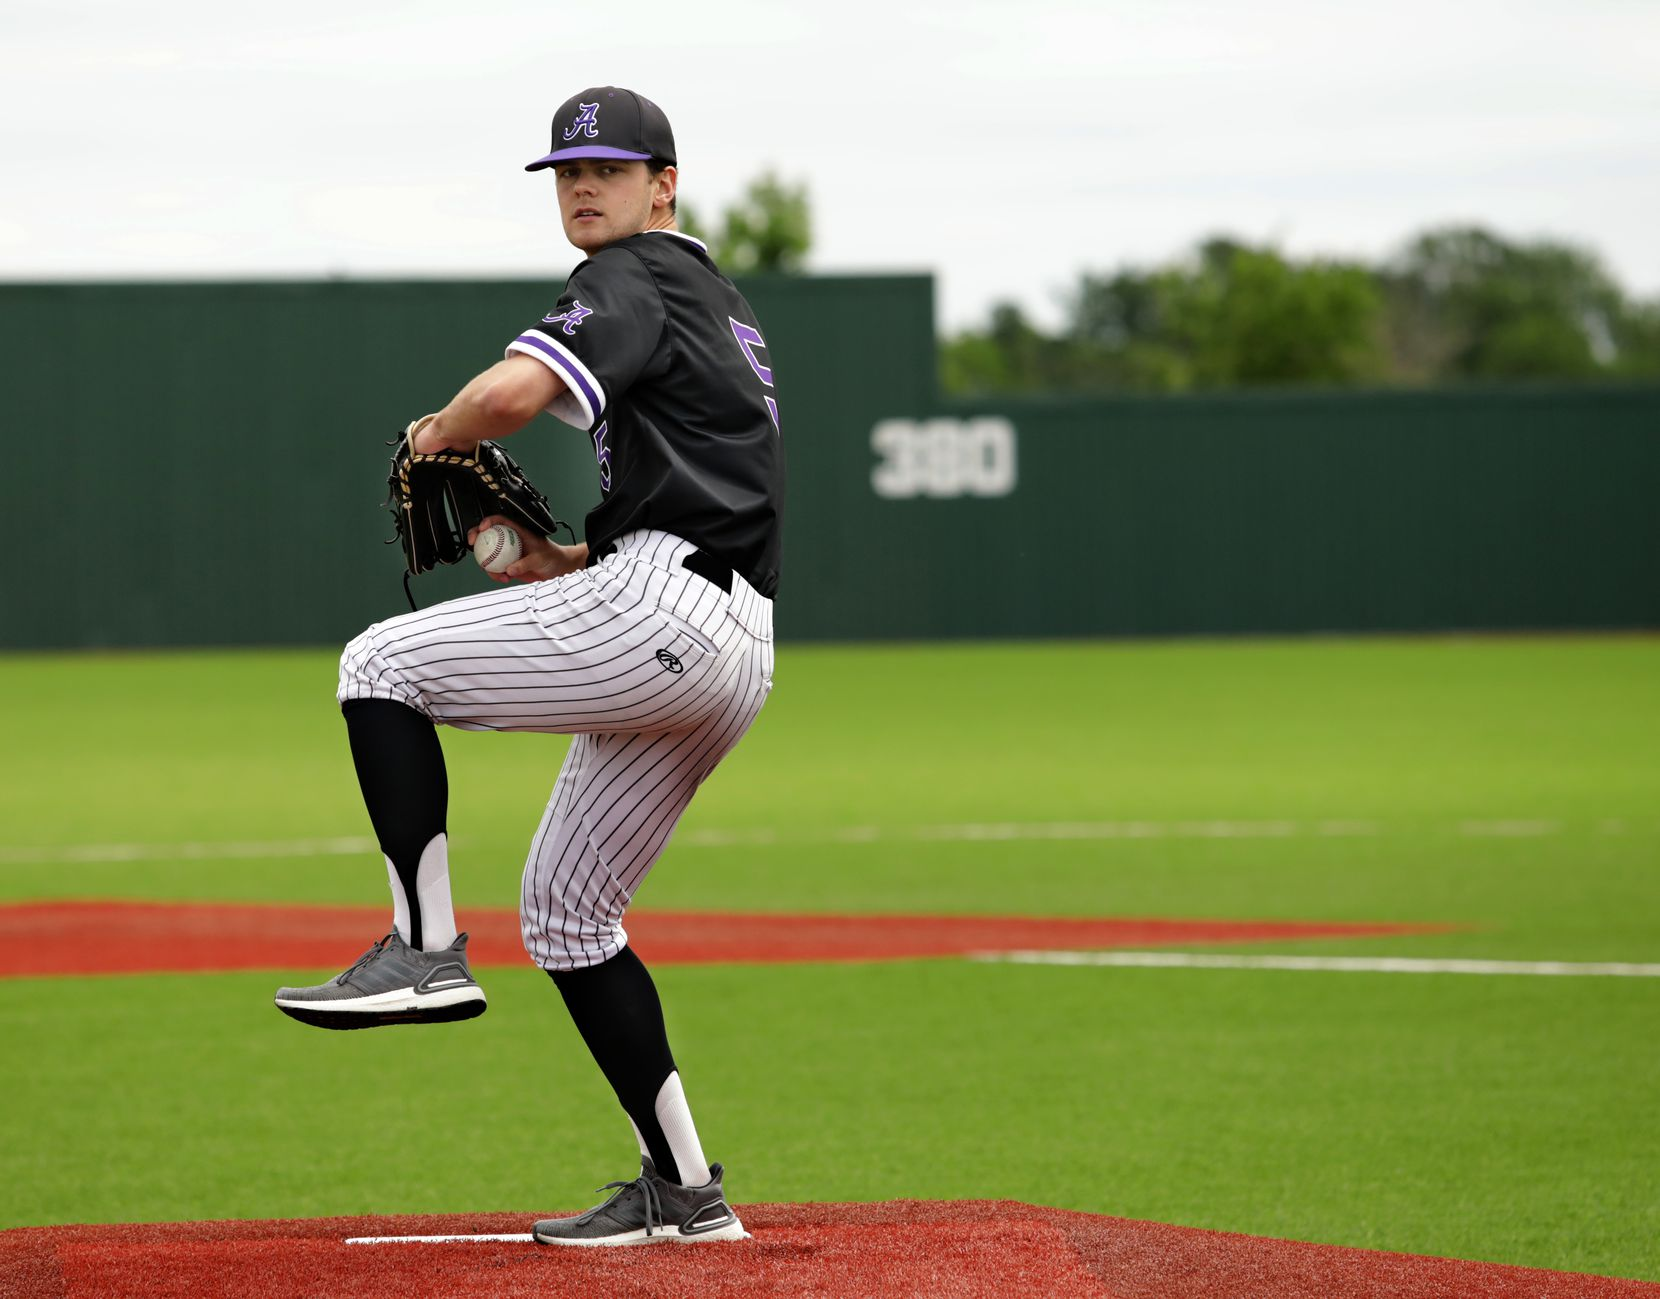 Rawley Hector warms up his pitching arm at Anna High School in Anna, TX, on May 4, 2021.